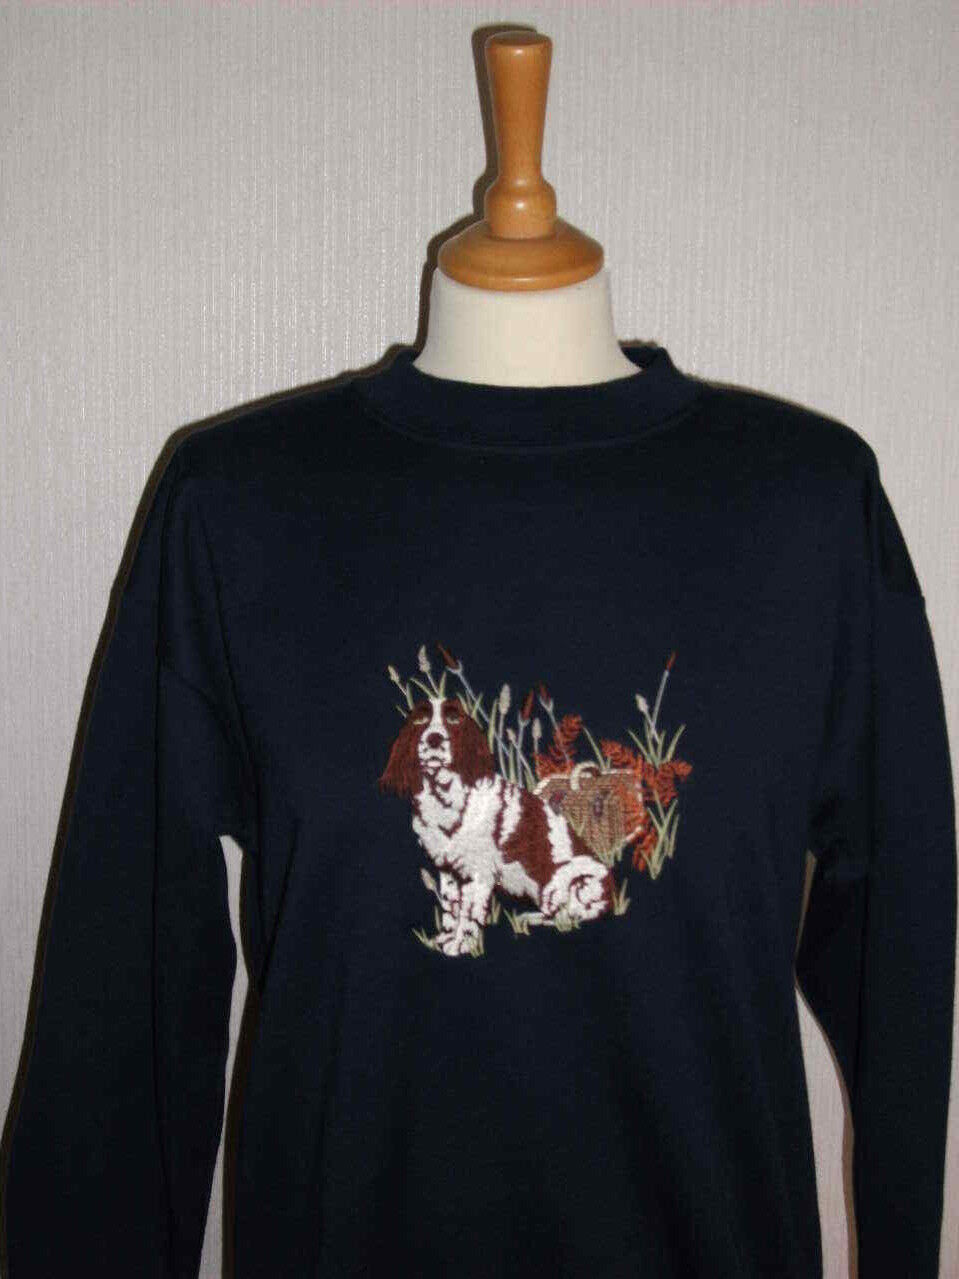 LADIES SWEATSHIRT,JUMPER,TOP WITH AN EMBROIDERED SPANIEL DOG DESIGN NAVY GREEN